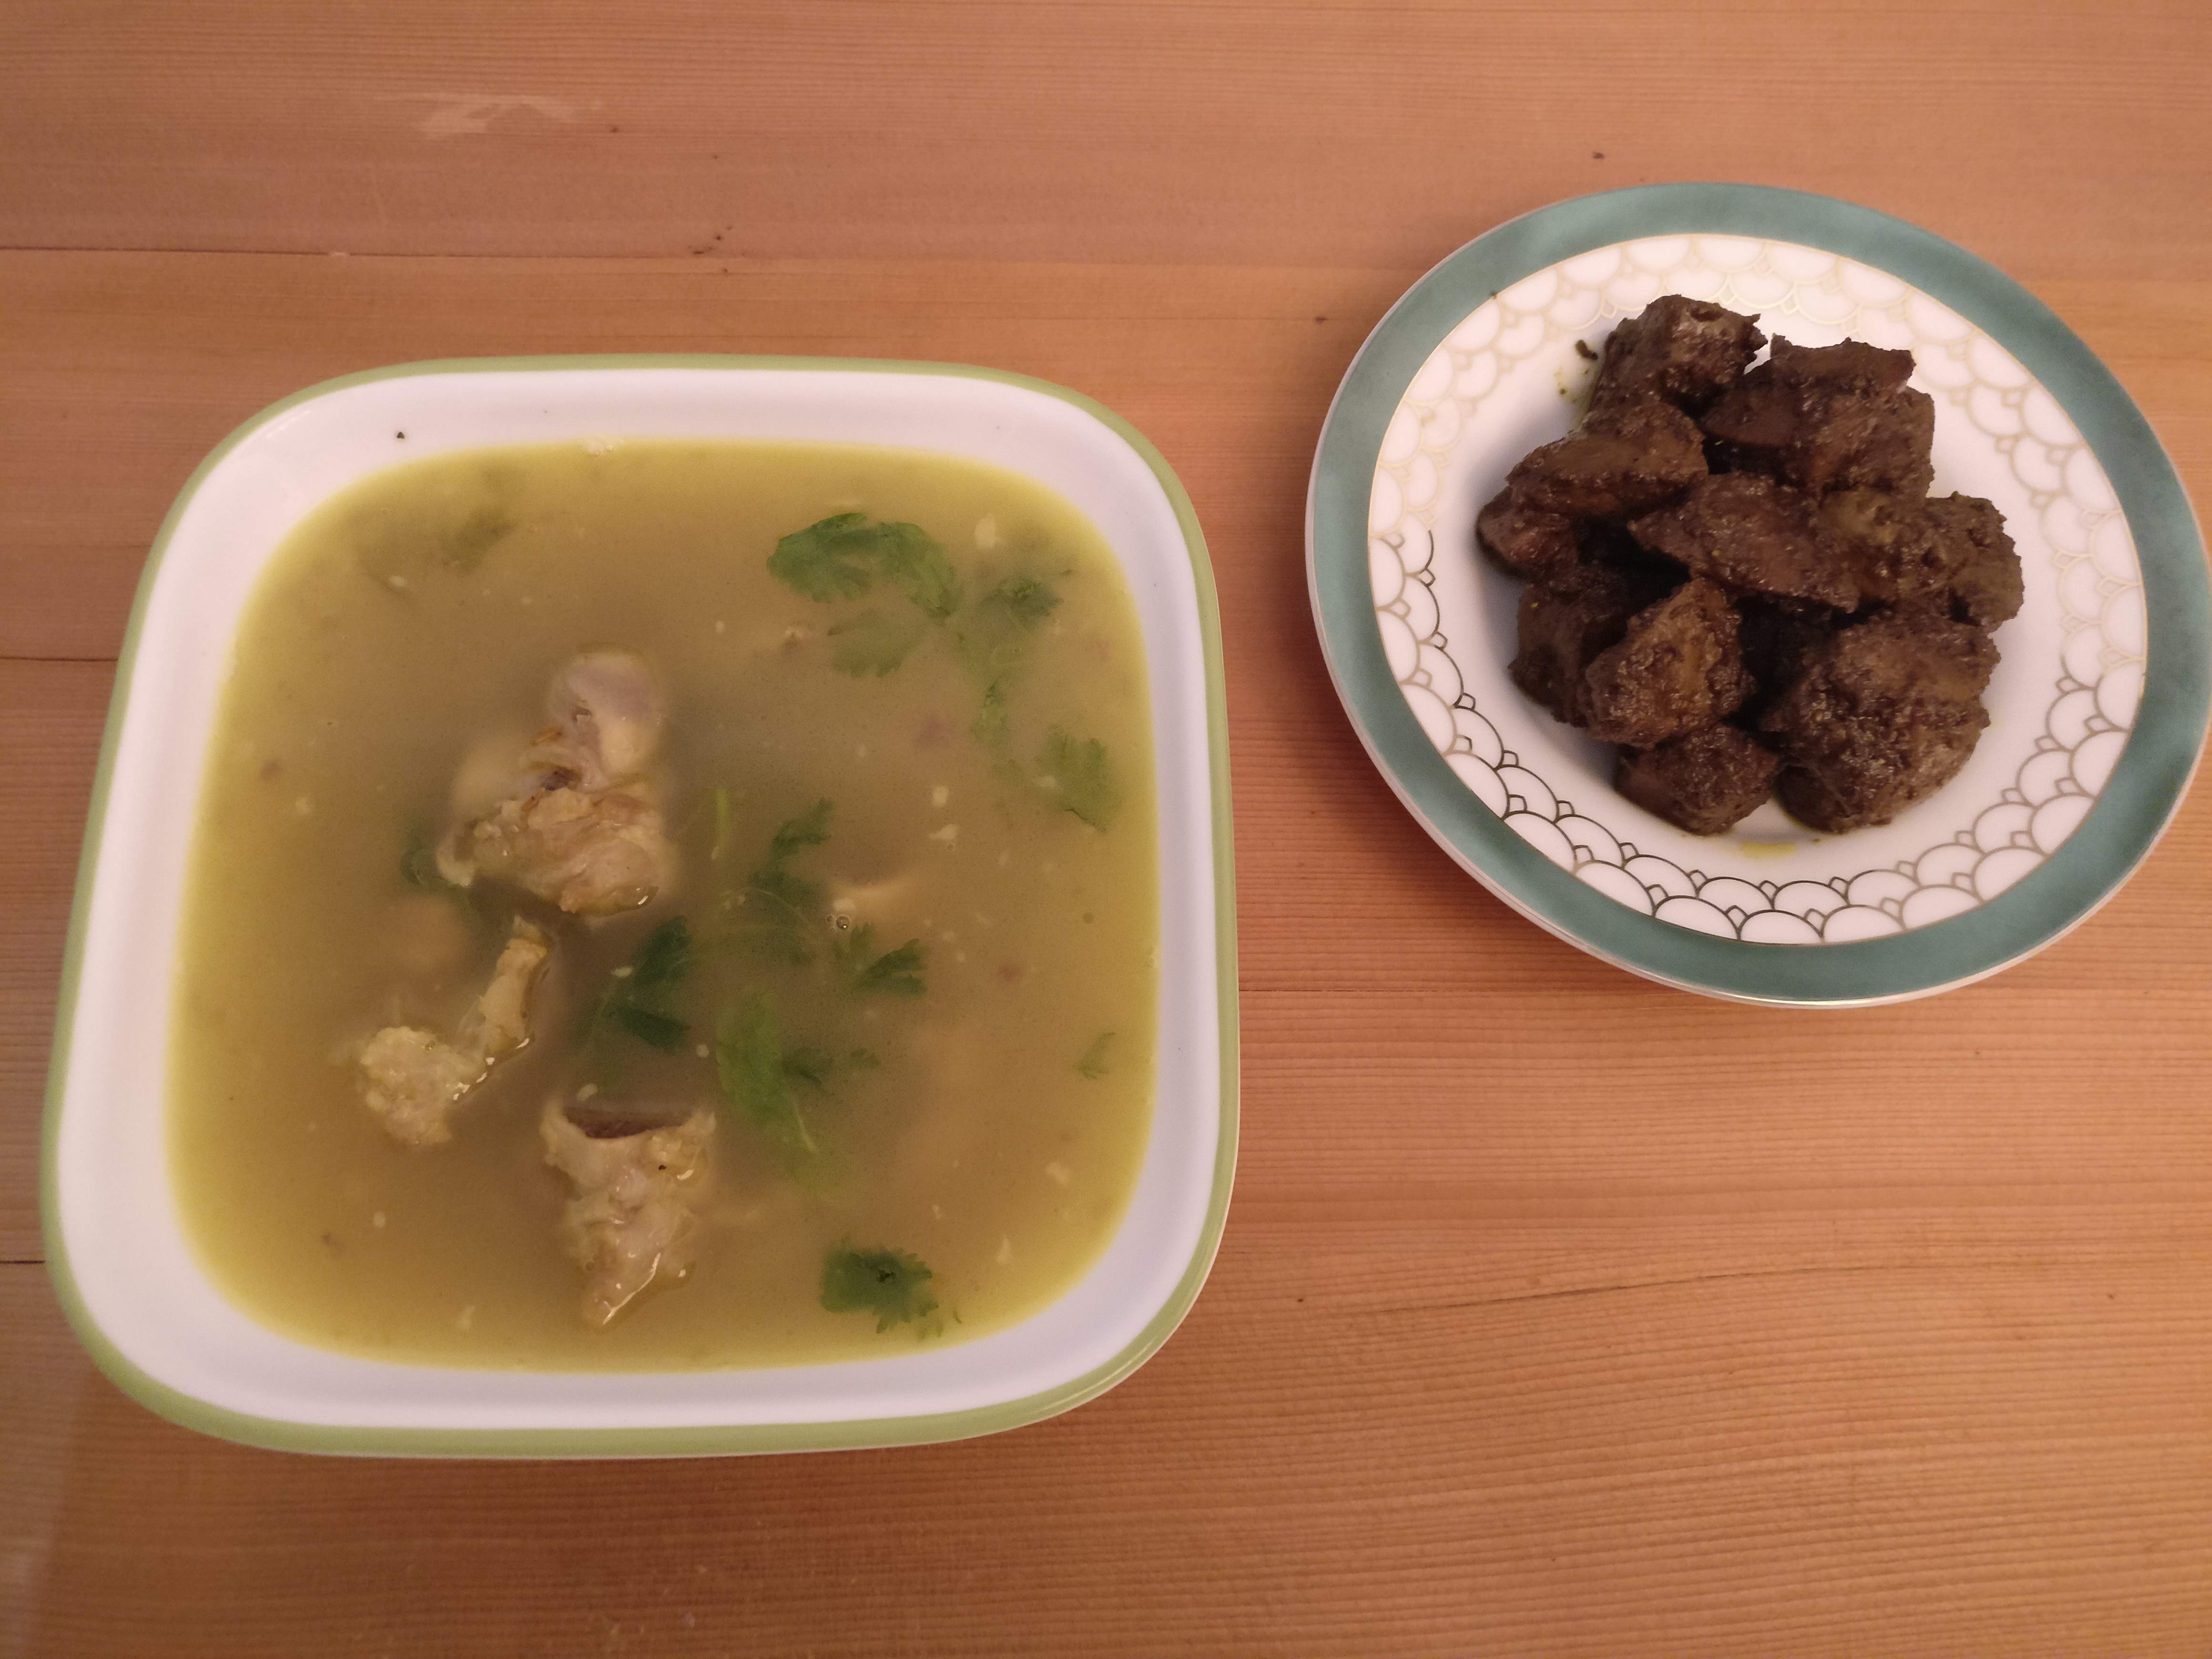 Mutton Bone Soup and Mutton Liver Fry